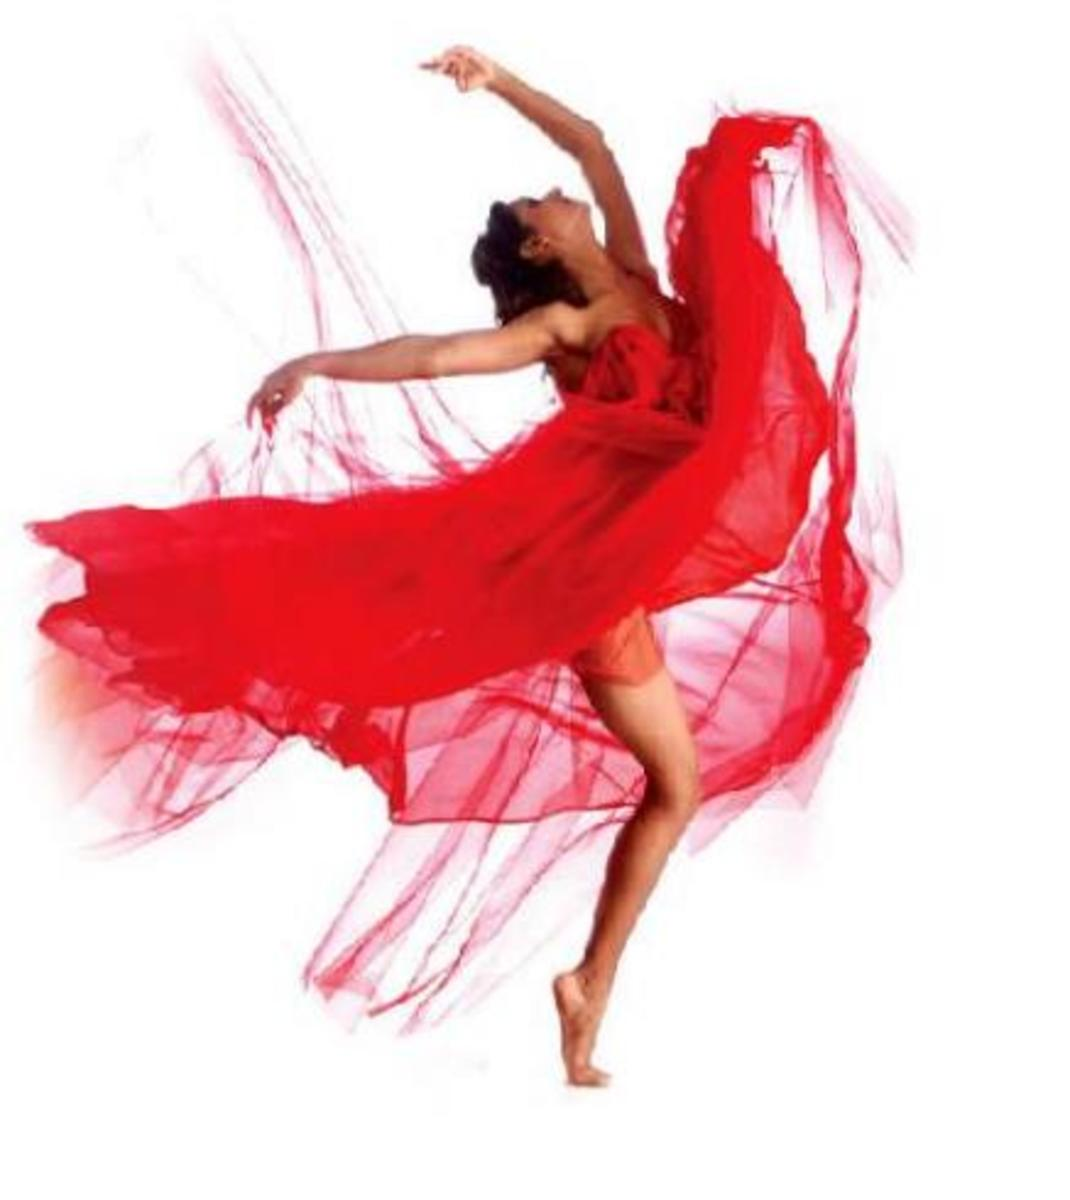 Shakti Mohan was featured in a Dance based Calender of 2012